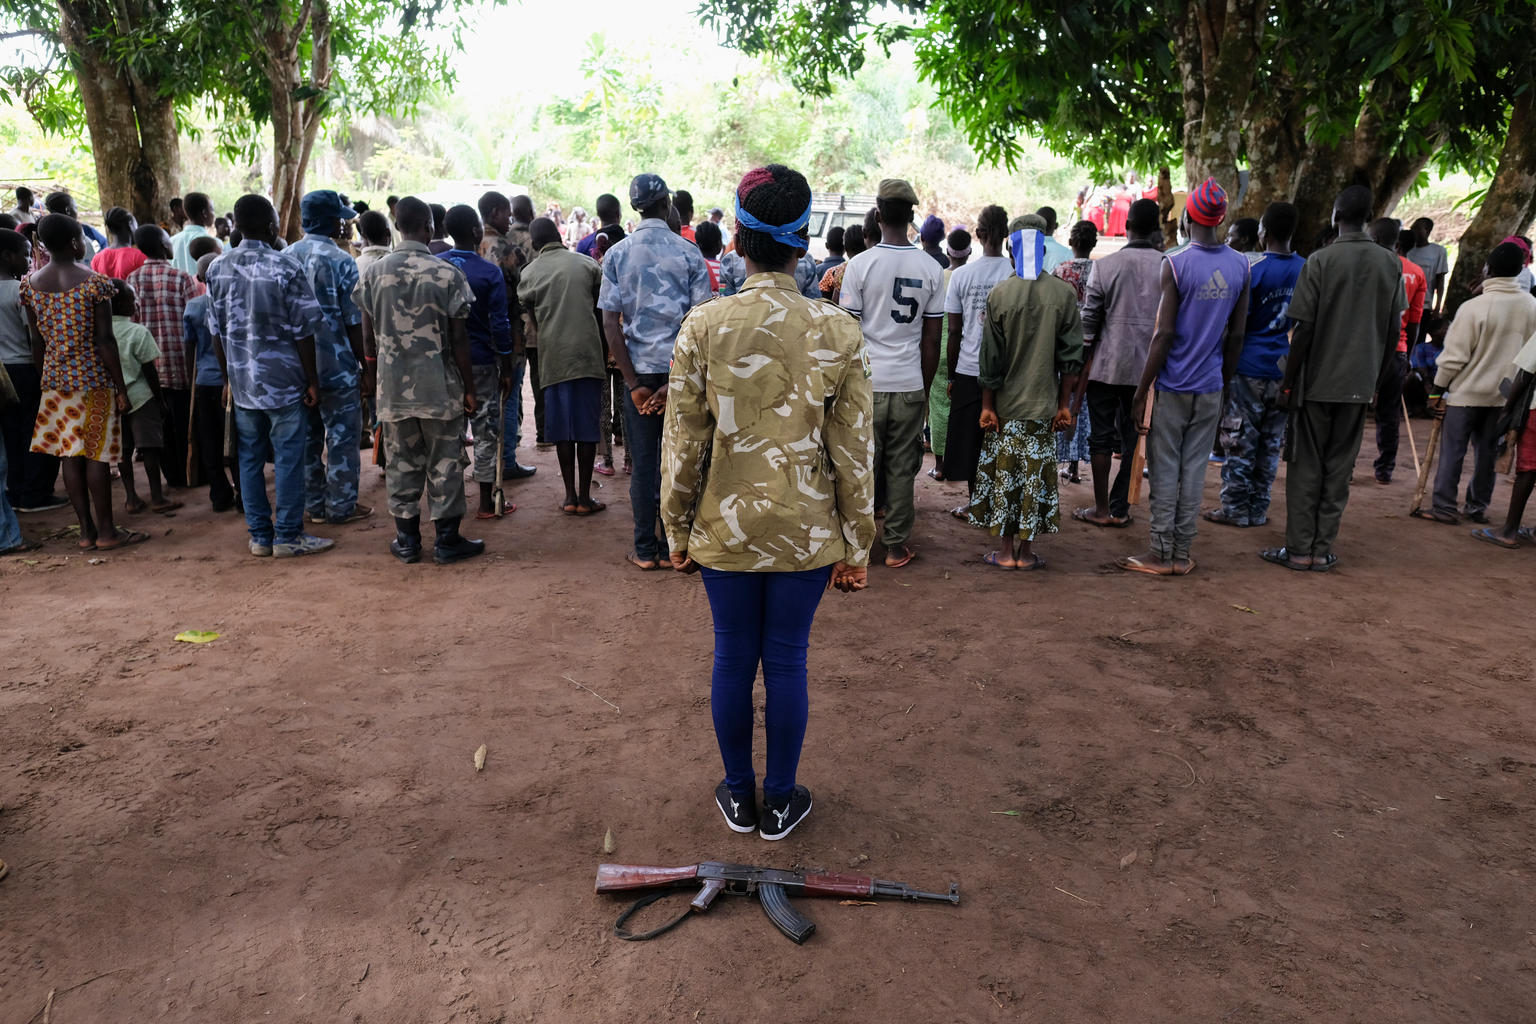 Back view of a young South Sudanese girl standing in the centre behind a group of other former child soldiers. An AK-47 rifle rests on the ground behind her.